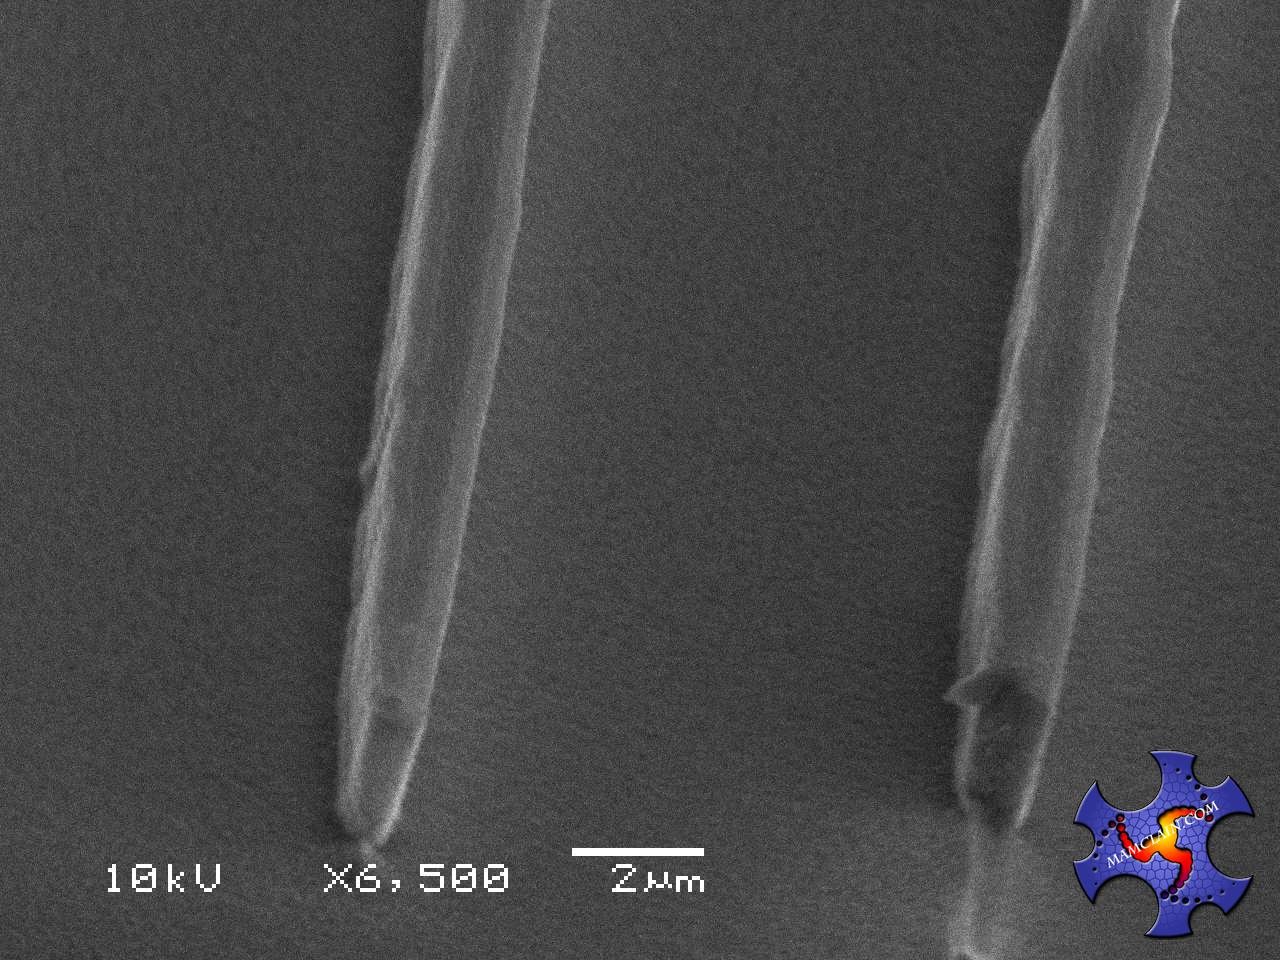 Note: The Oxide on the Sidewall is Lighter Since Oxide Reflects the SEM Beam Better.